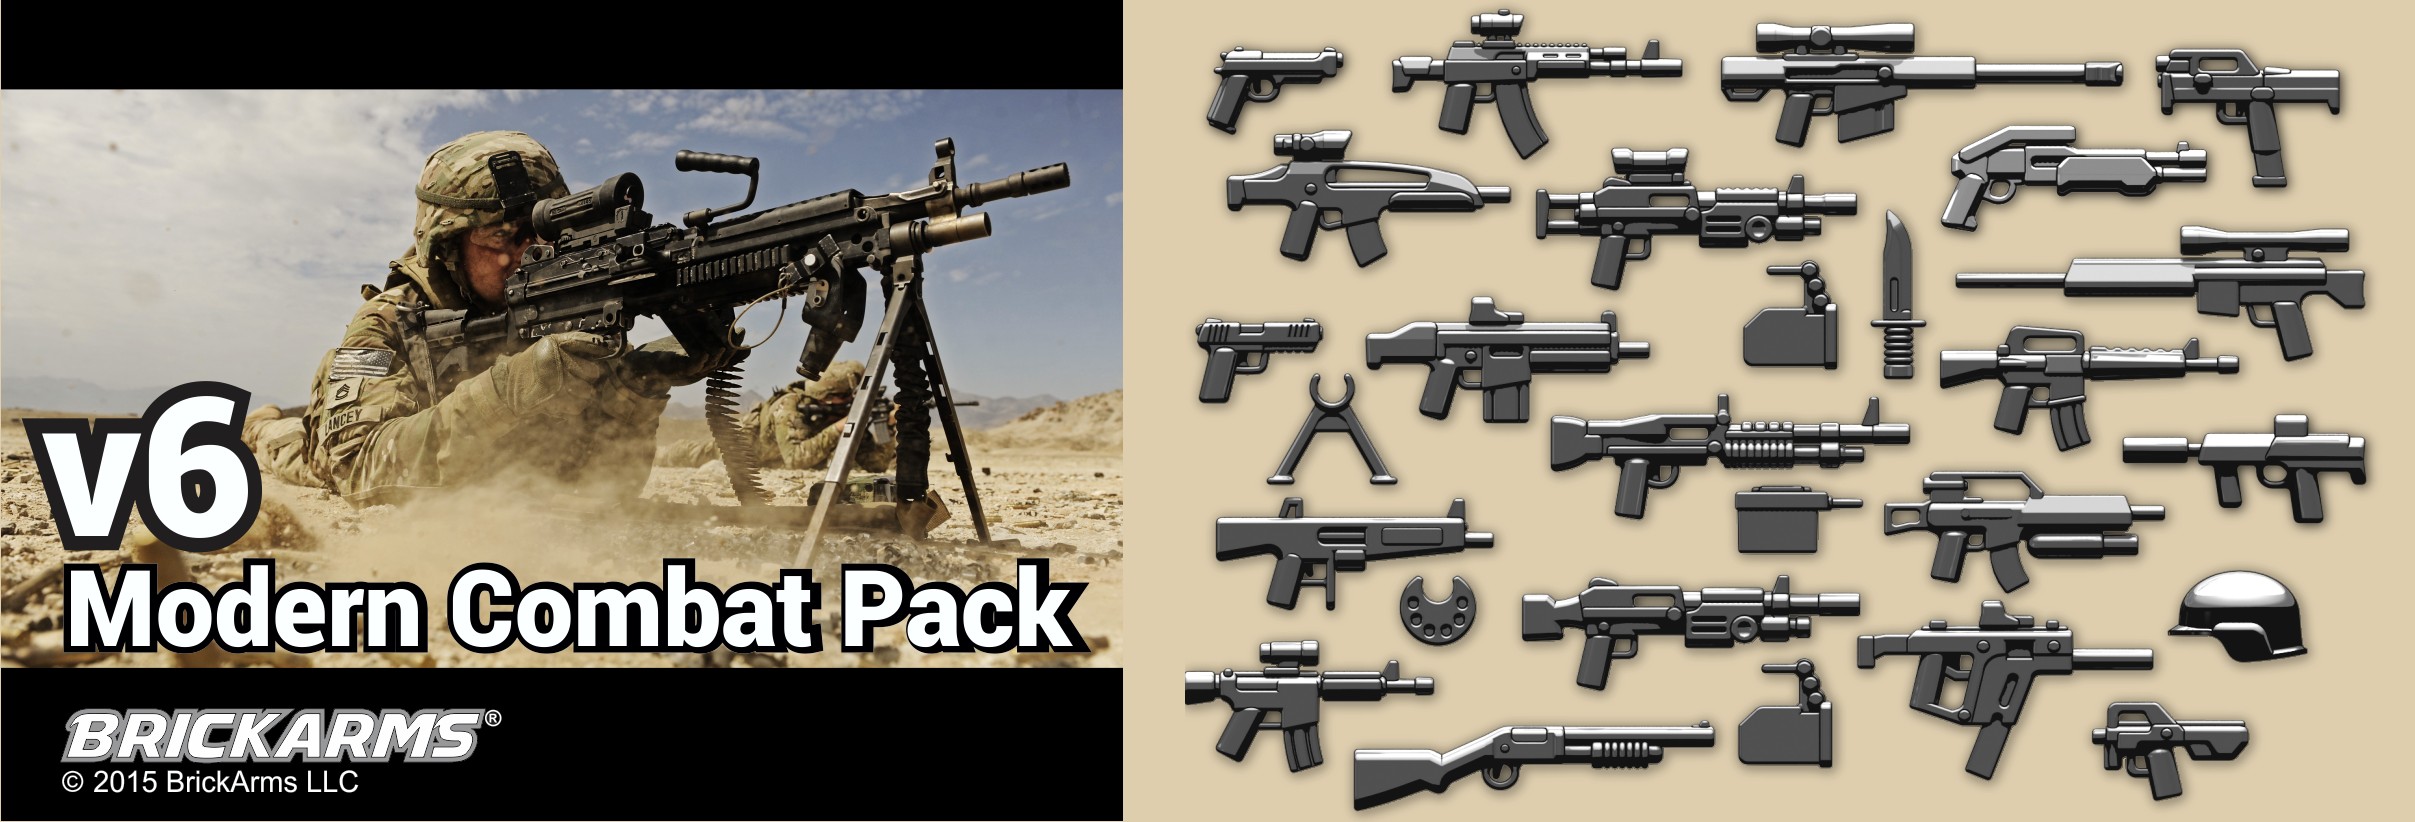 modern-combat-pack-6-long.png